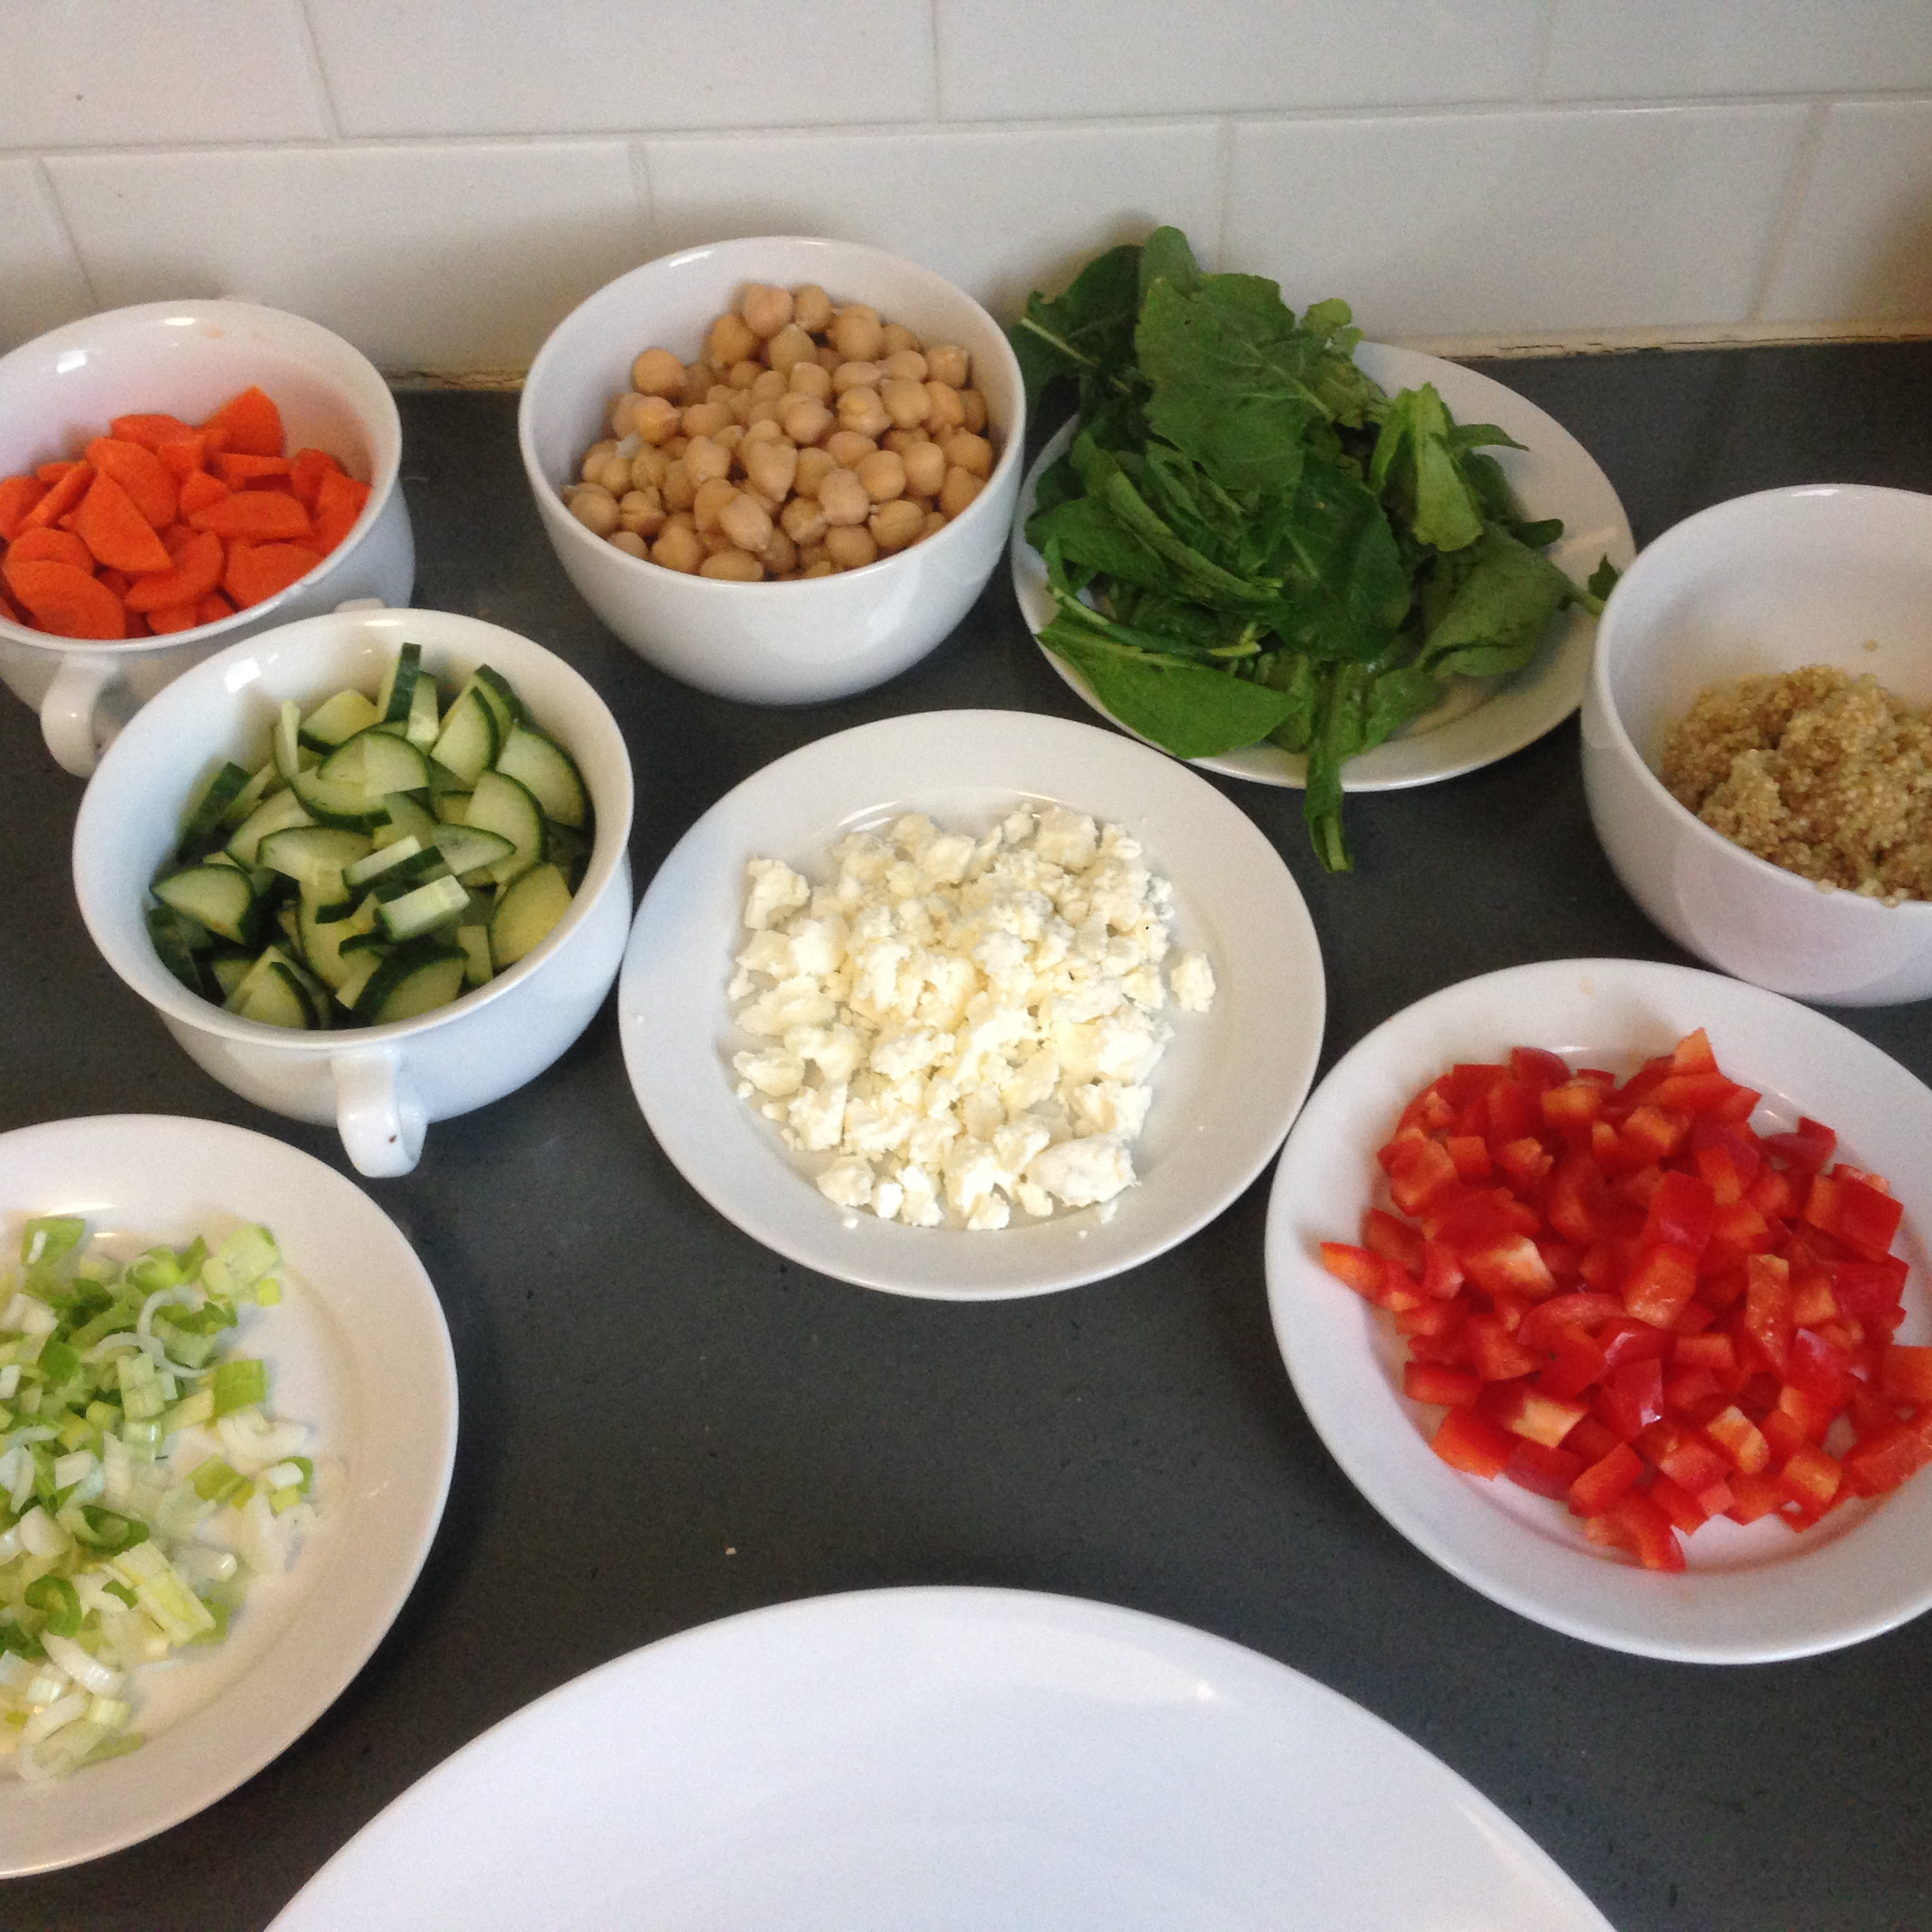 All the ingredients chopped and ready.